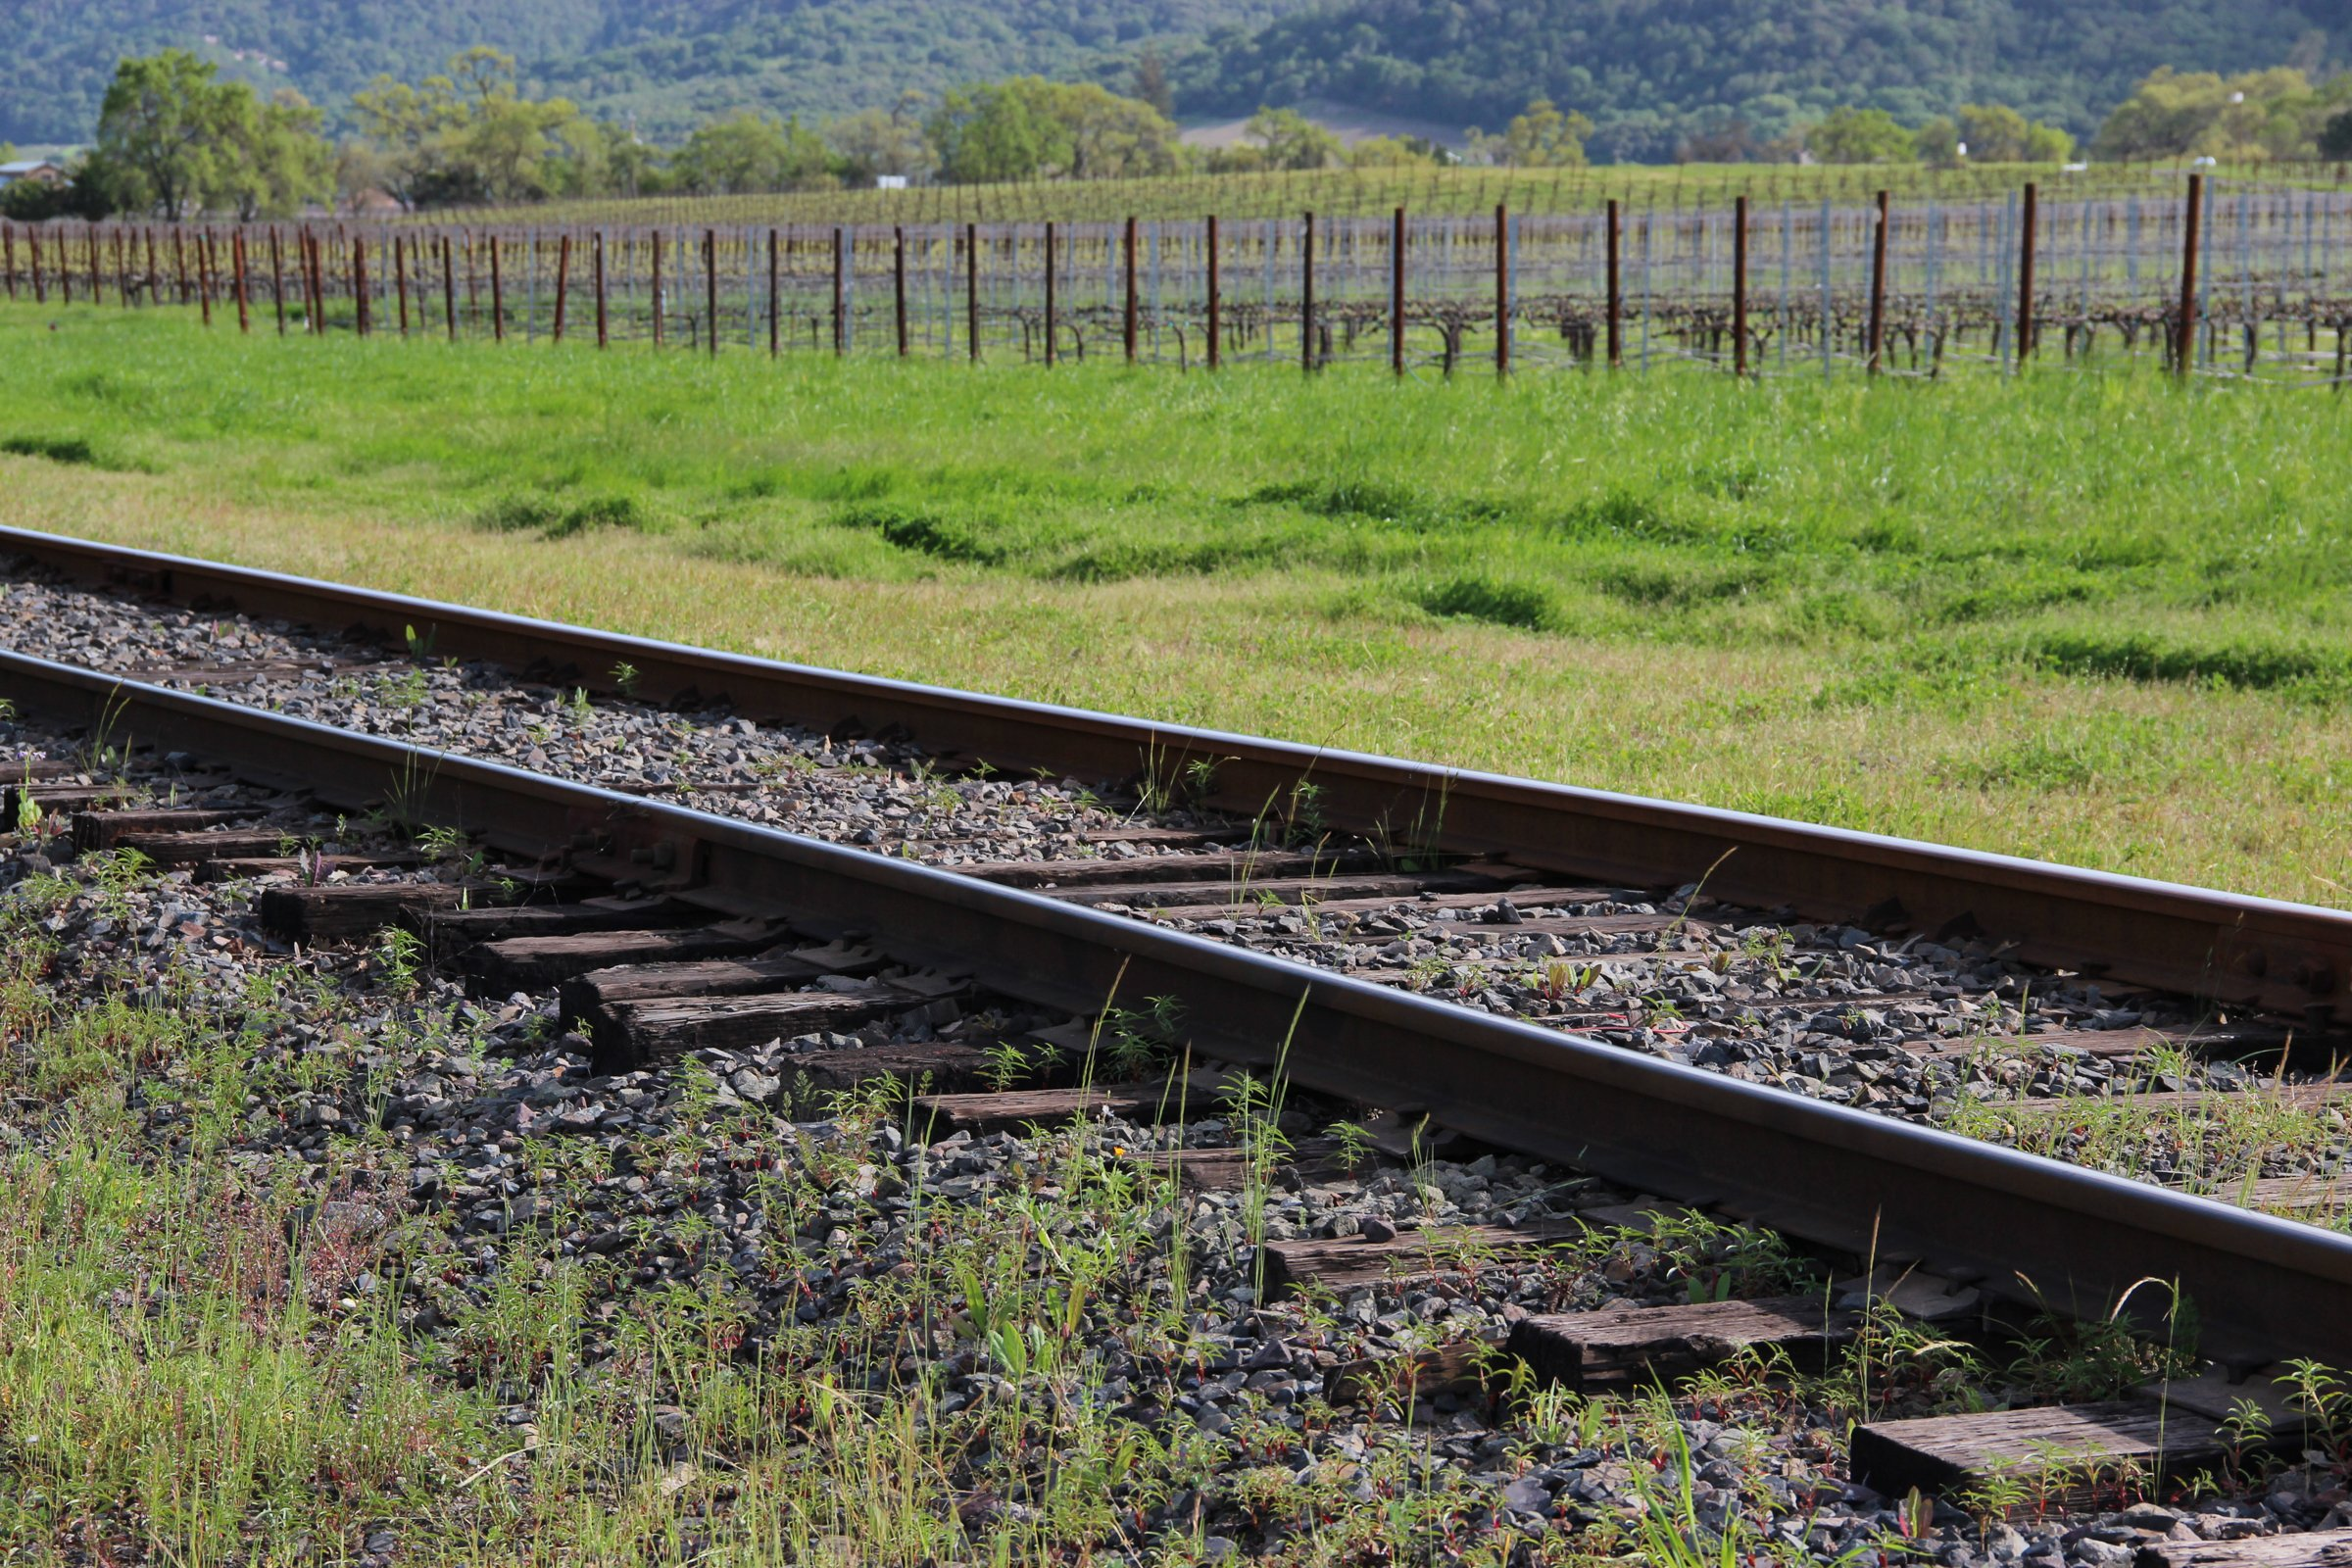 Train Tracks by Vineyards